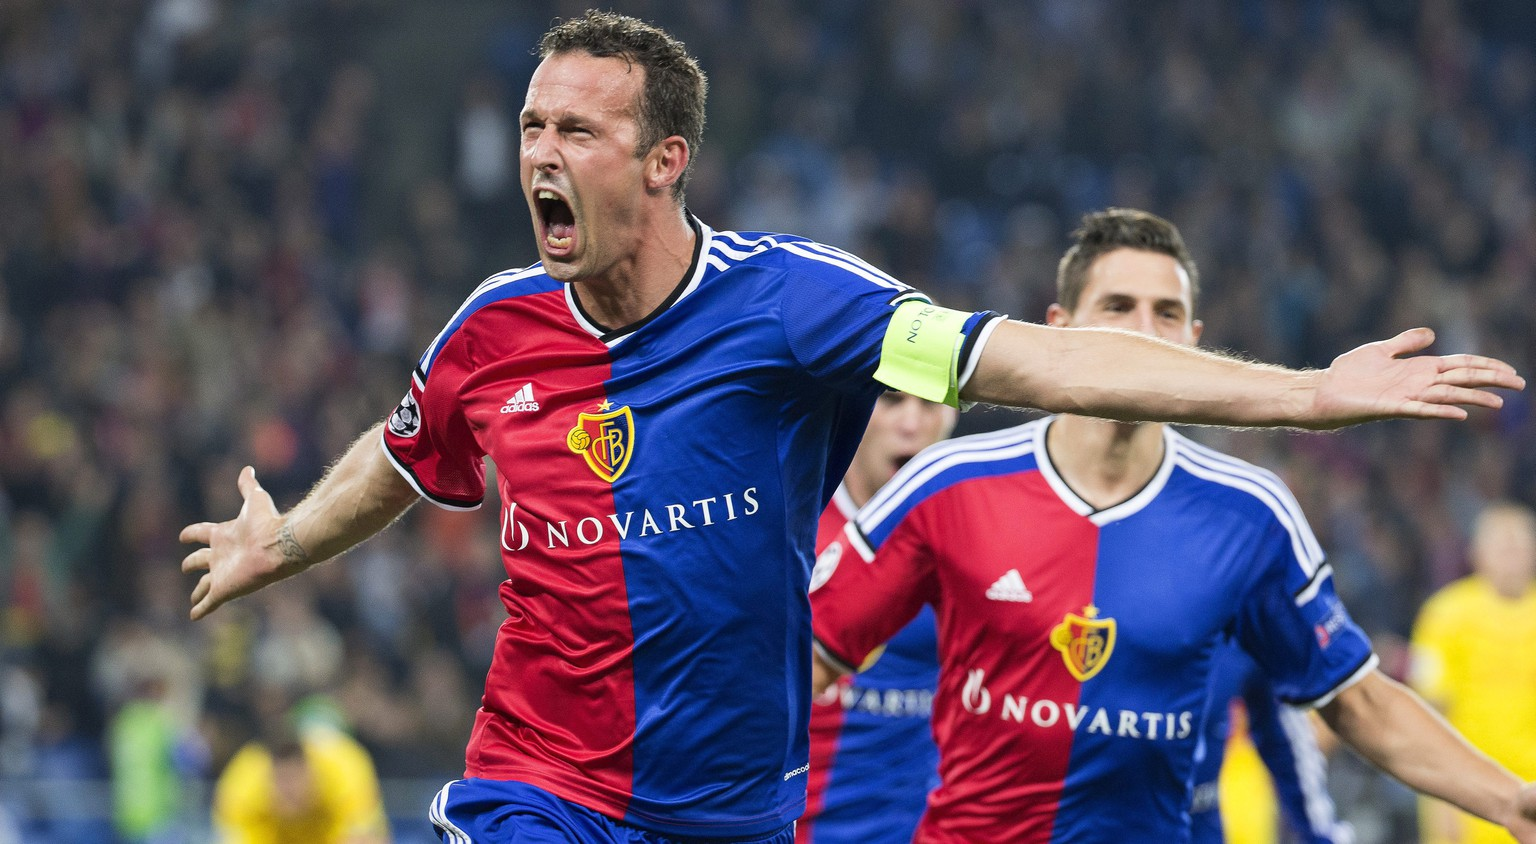 epa04427129 Basel's Marco Streller celebrates after scoring the 1-0 lead during the UEFA Champions League group B soccer match between FC Basel 1893 and Liverpool FC at St. Jakob-Park stadium in Basel, Switzerland, 01 October 2014.  EPA/PATRICK STRAUB